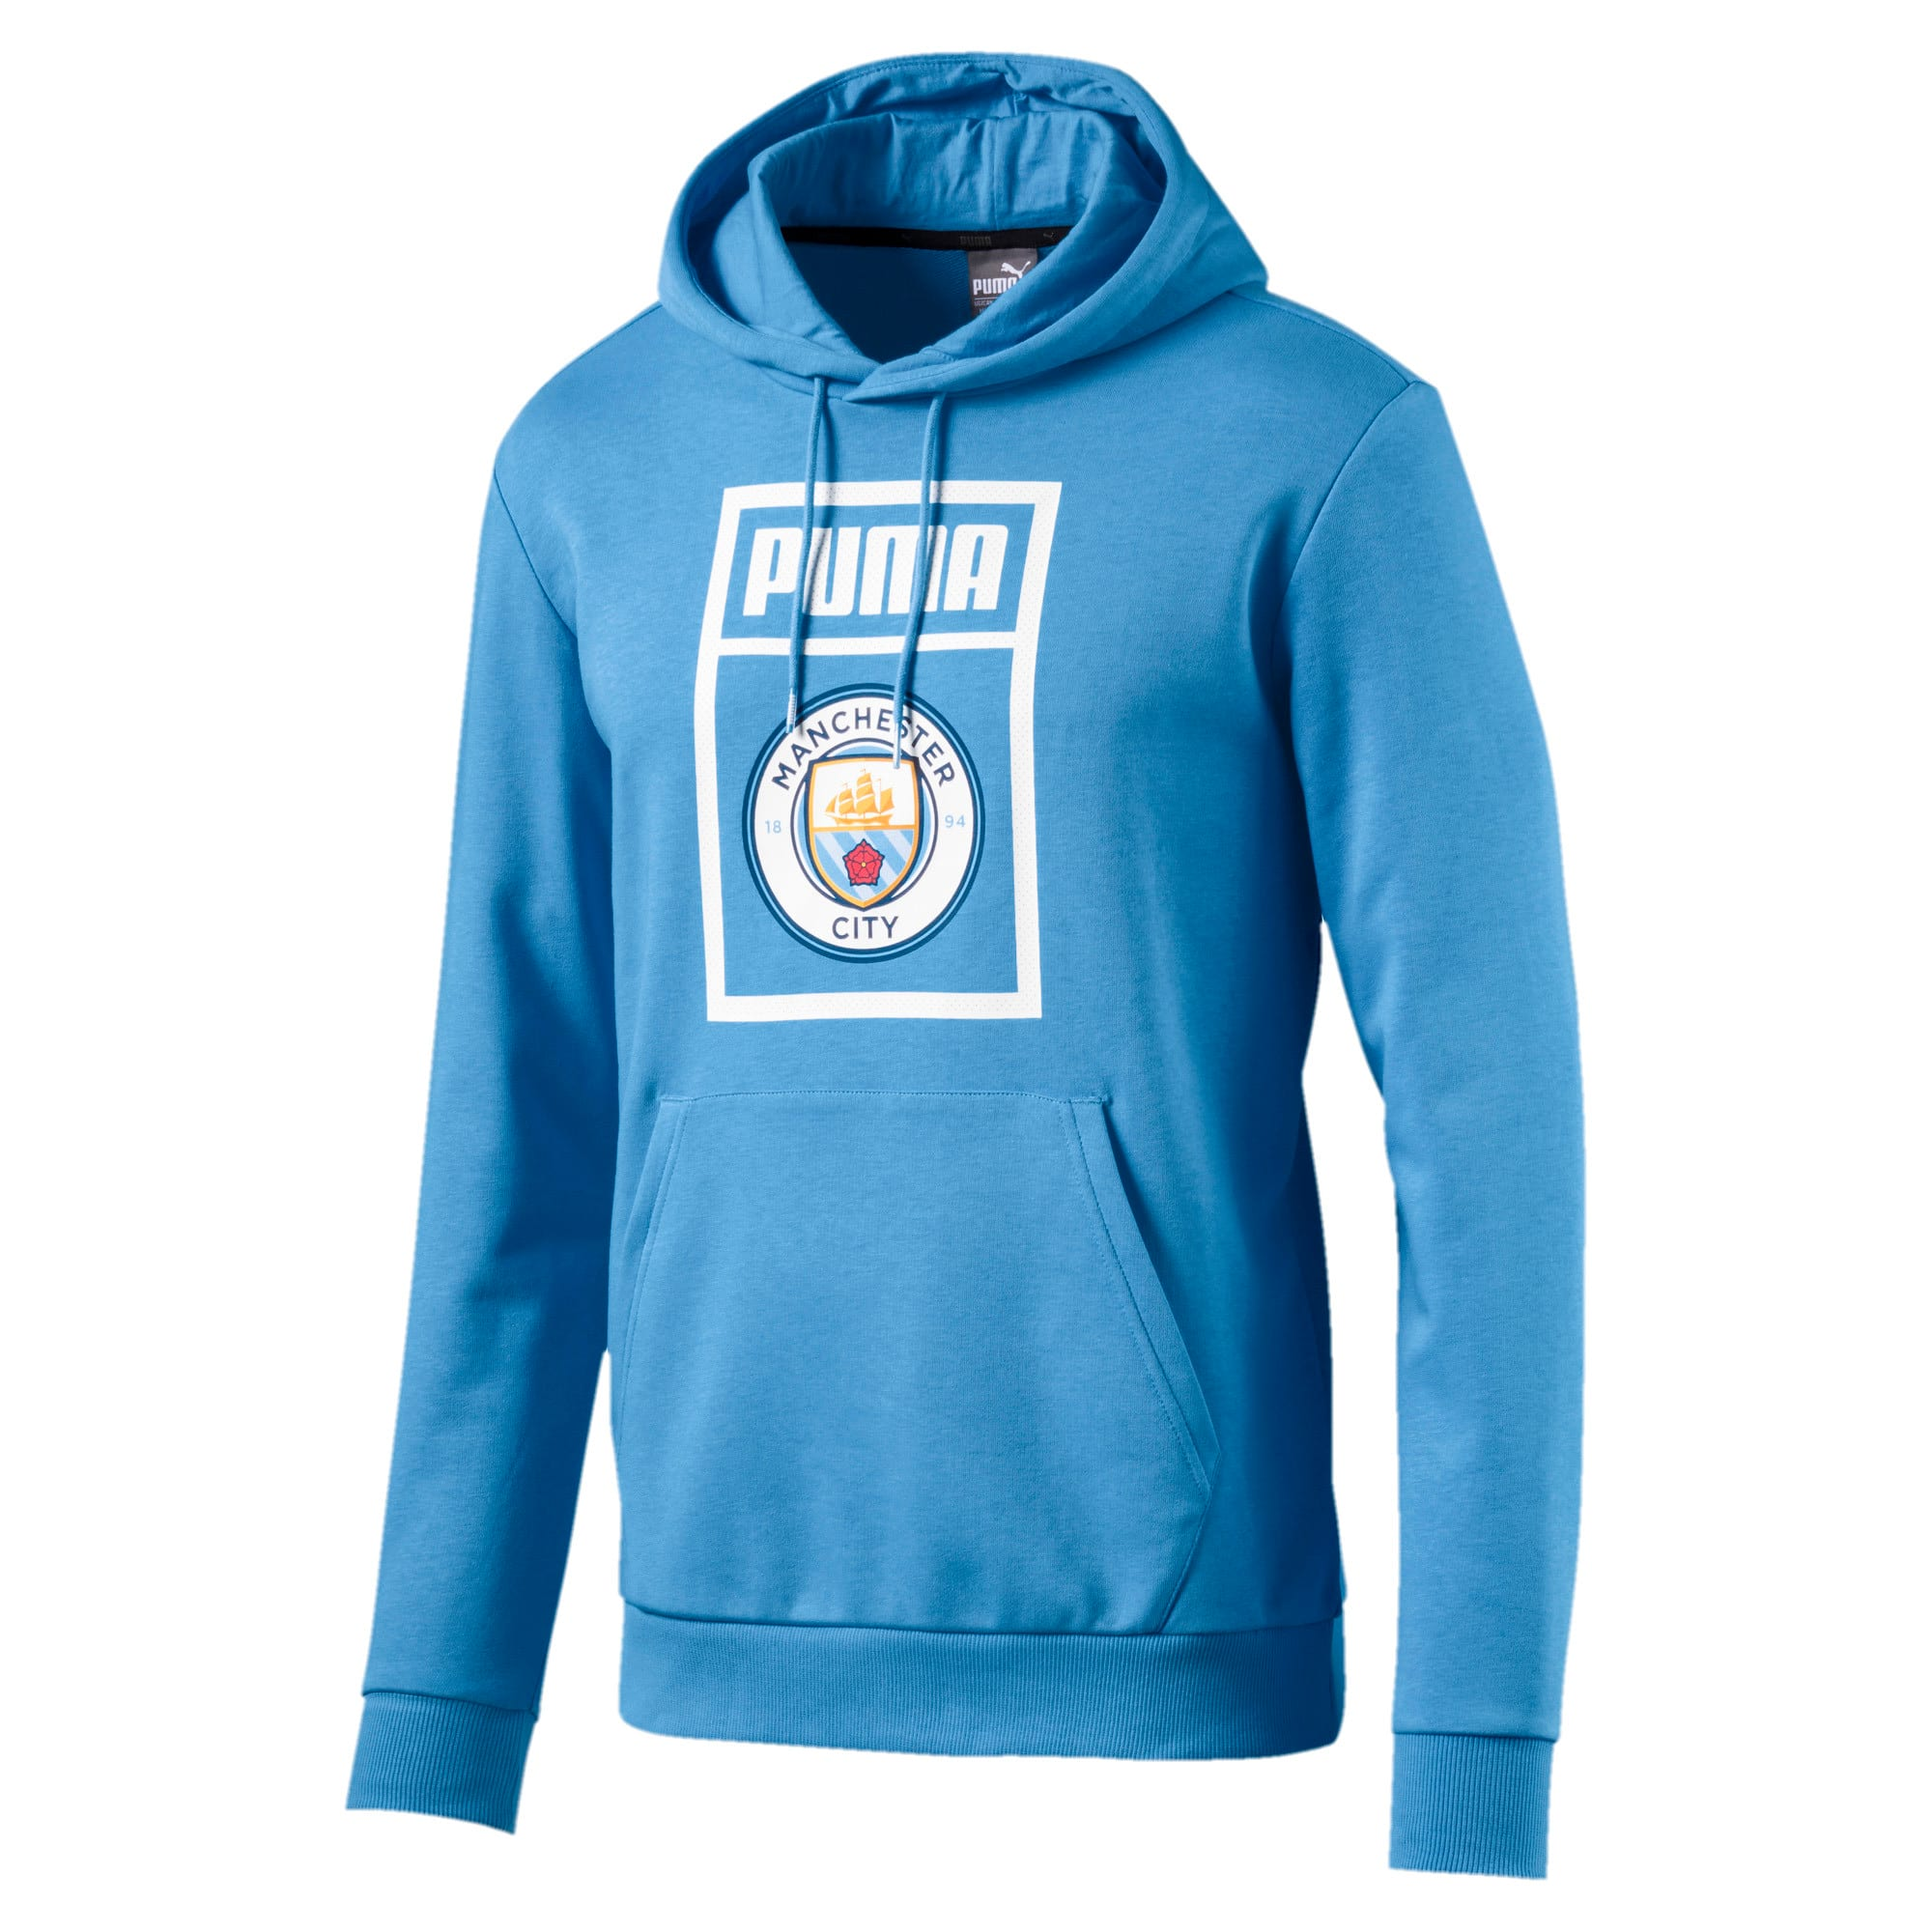 Thumbnail 1 of Man City Men's Shoe Tag Hoodie, Team Light Blue-Puma White, medium